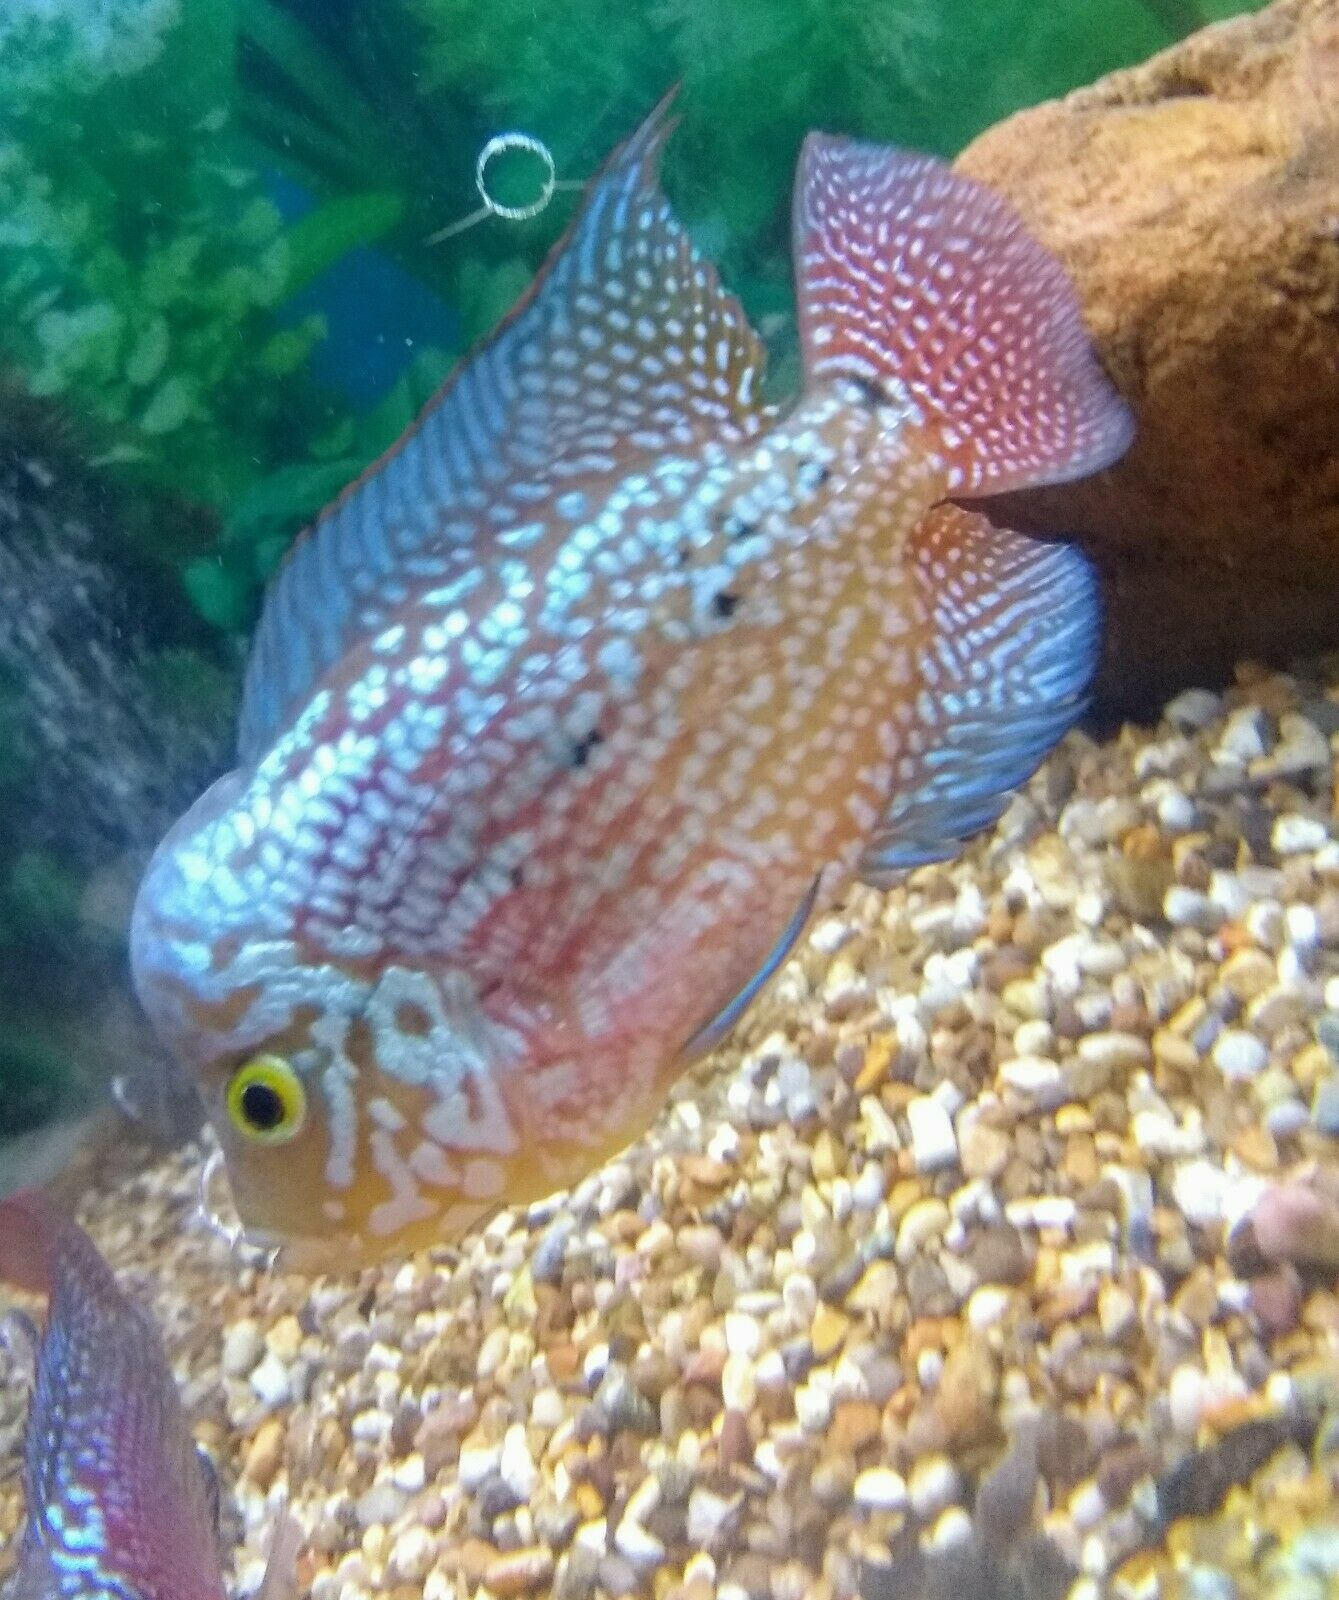 Flowerhorn F2 King Kamfa male (With images) Parrot fish